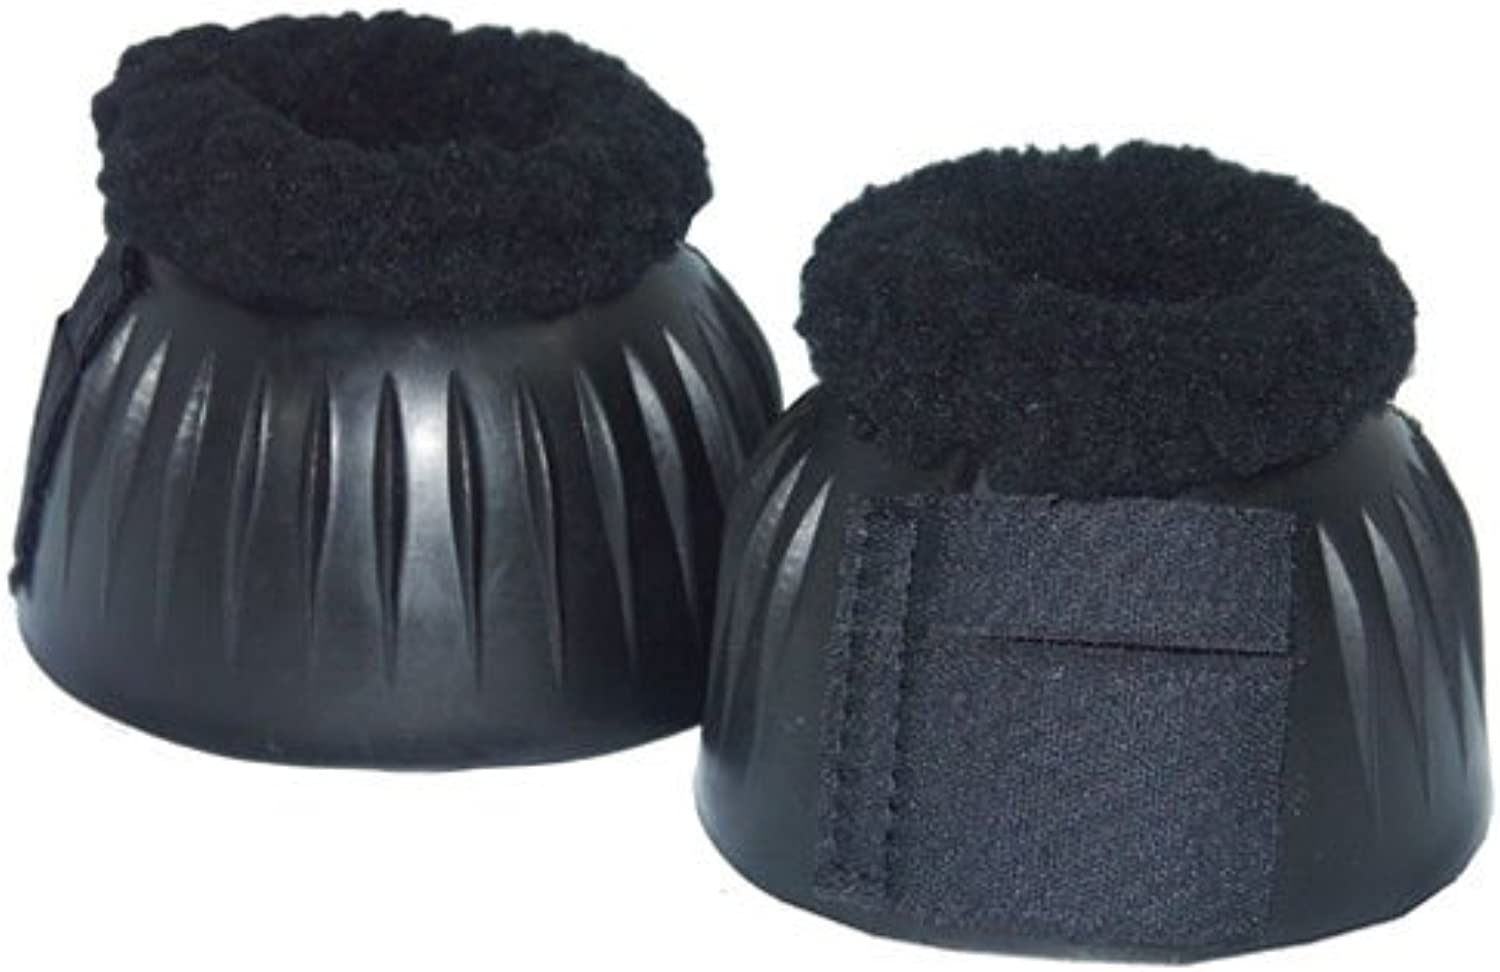 Fleece Lined Bell Boot - Extra Large Black 247288BK